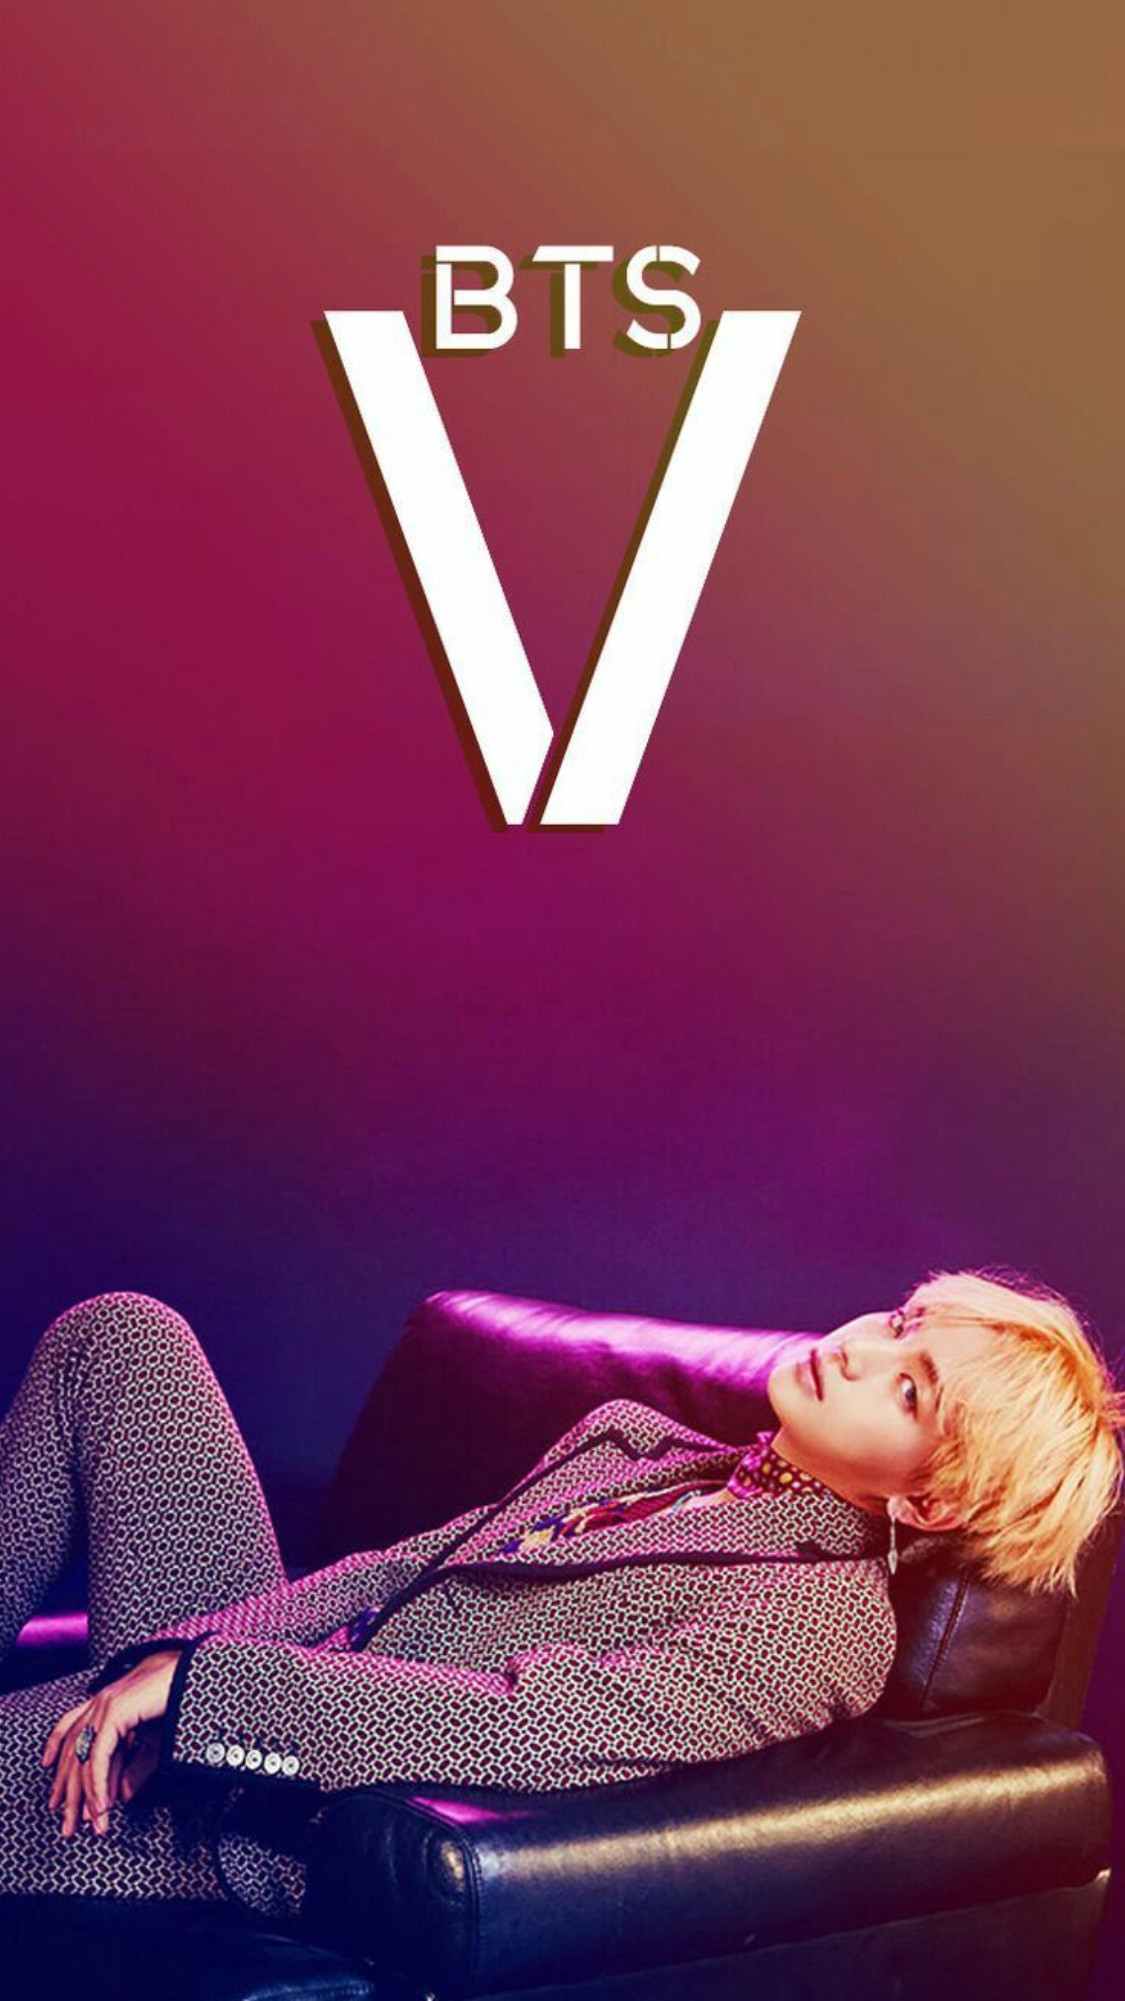 Bts Wings Wallpapers 90+ images